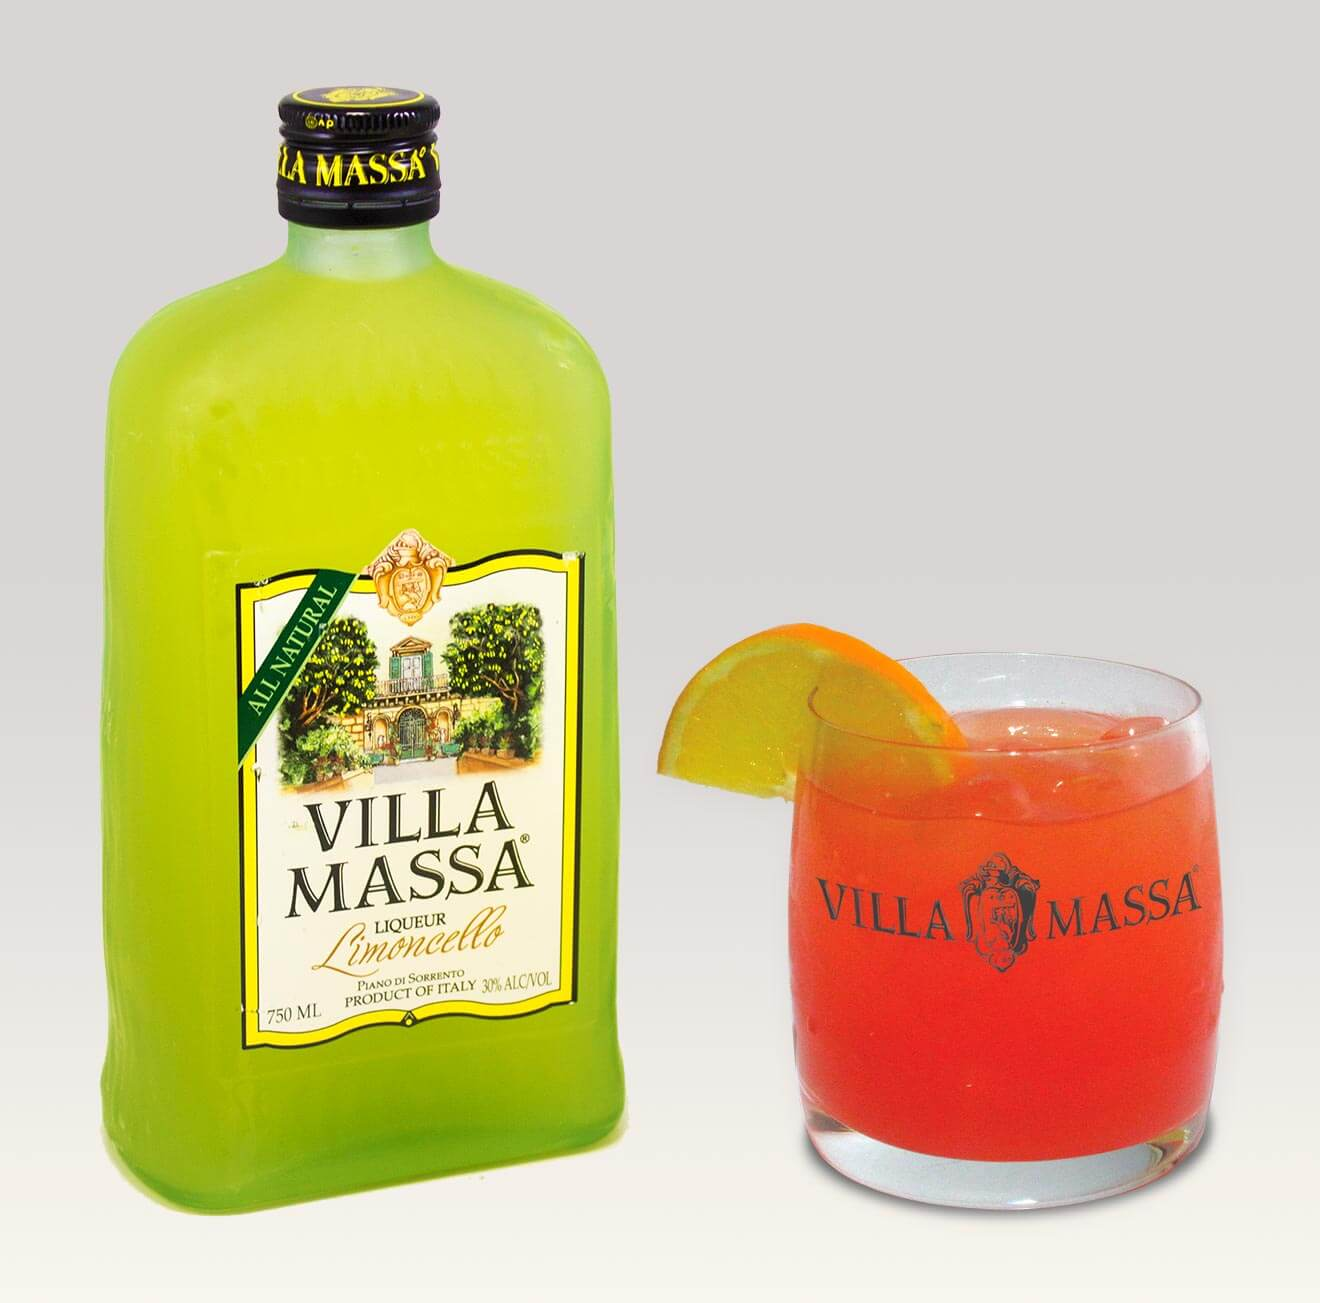 Villa Massa Sanguinella cocktail made with limoncello liqueur